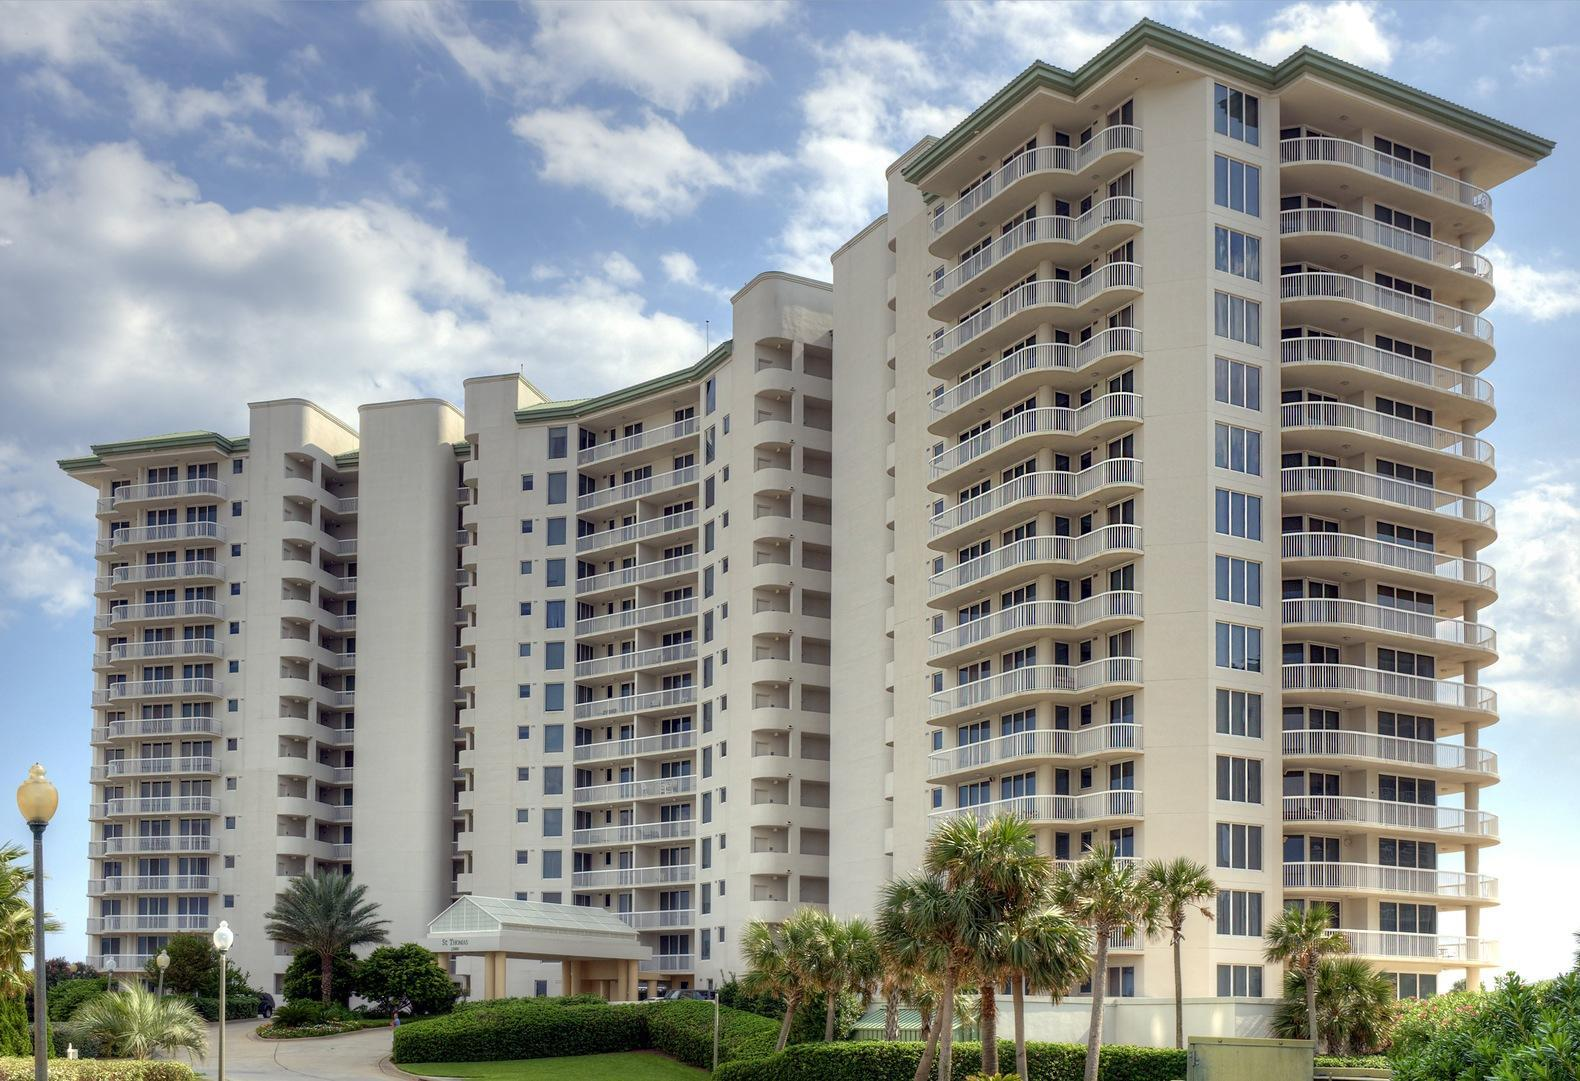 Condominium for Sale at 15400 Emerald Coast Pkwy, T112, Destin, FL 32541 15400 Emerald Coast Pkwy T112 Destin, Florida 32541 United States